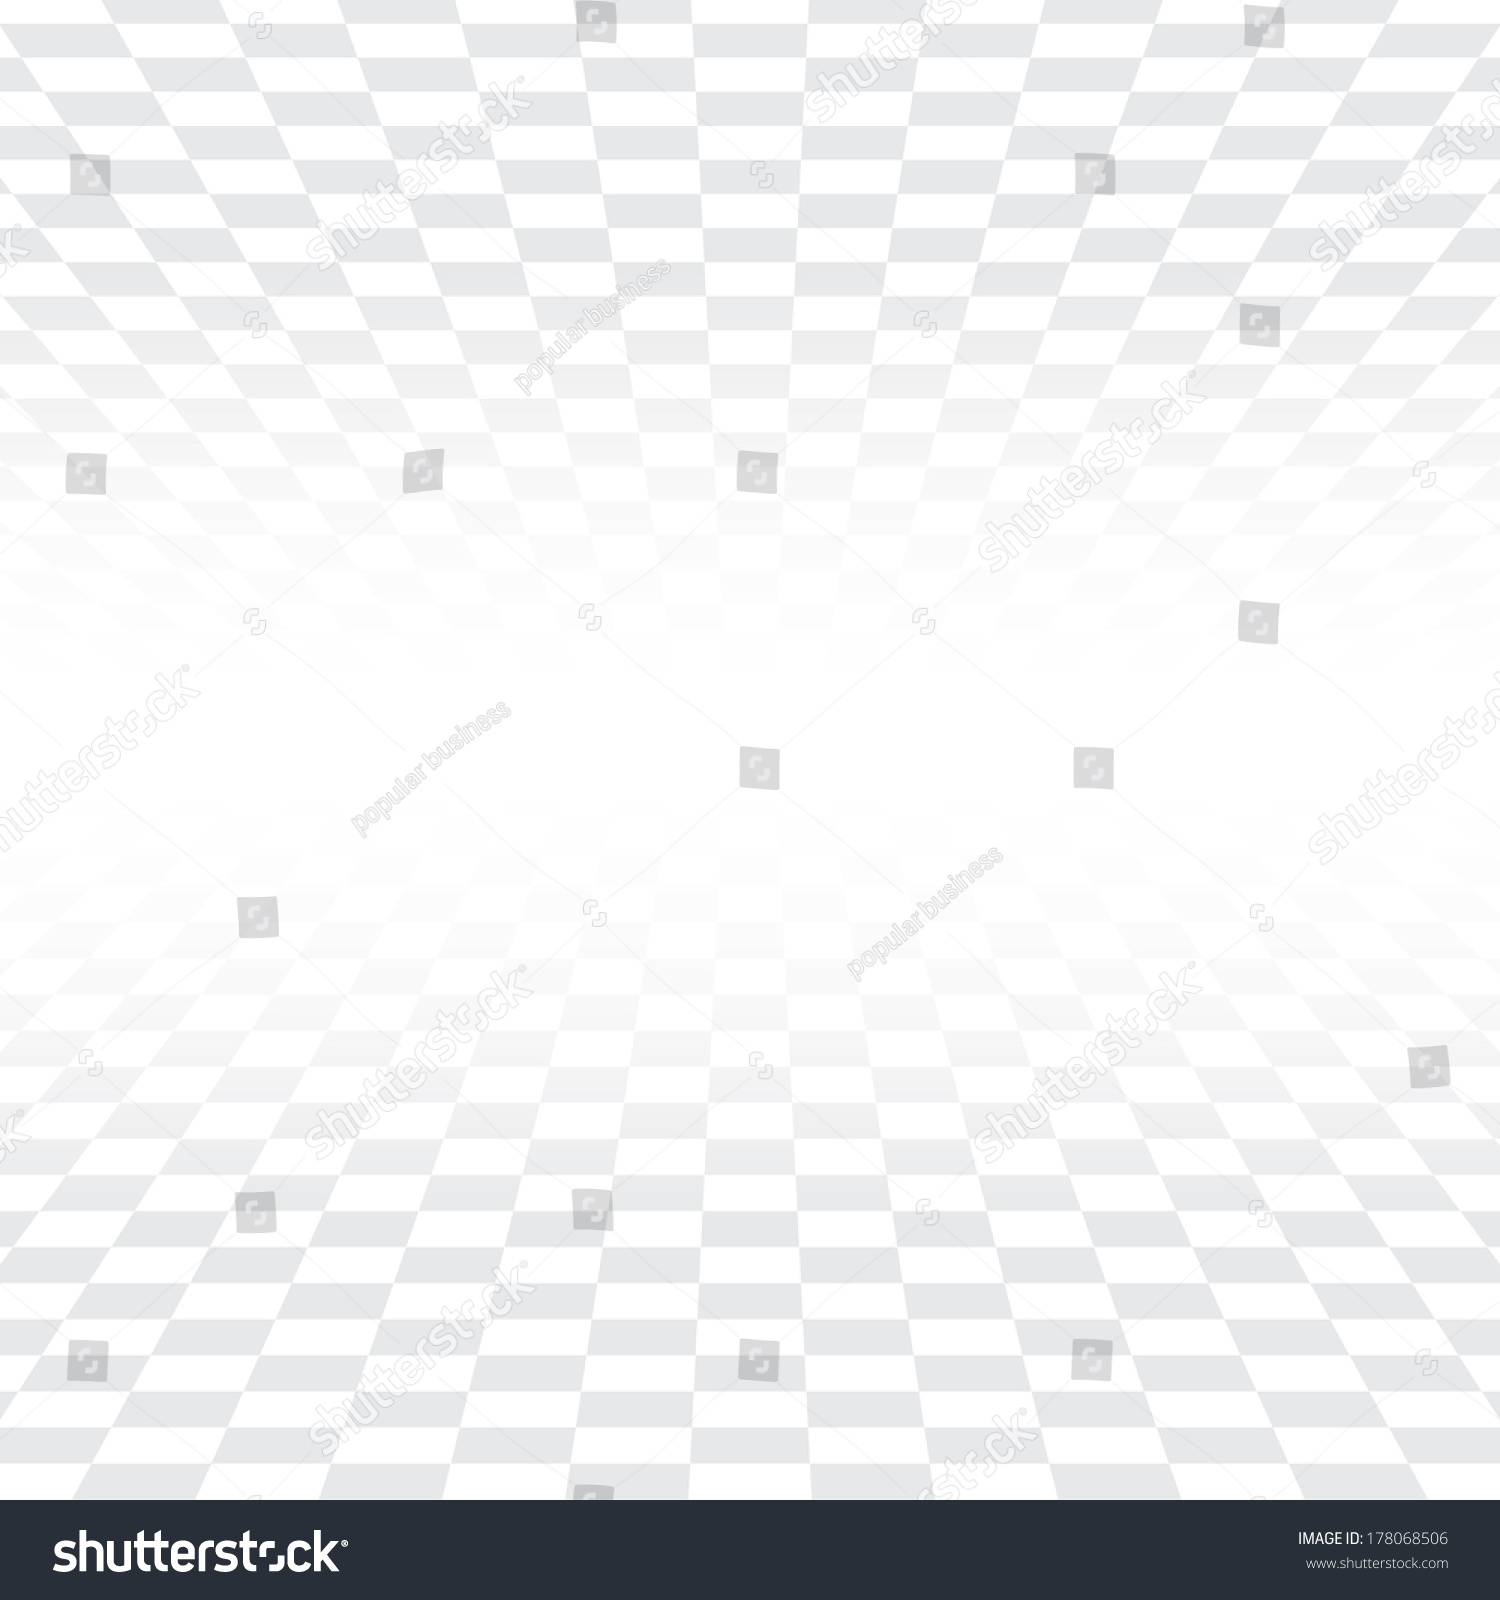 Background image transparency - Abstract Square Tile Perspective White And Gray Texture Background Same Transparency Grid